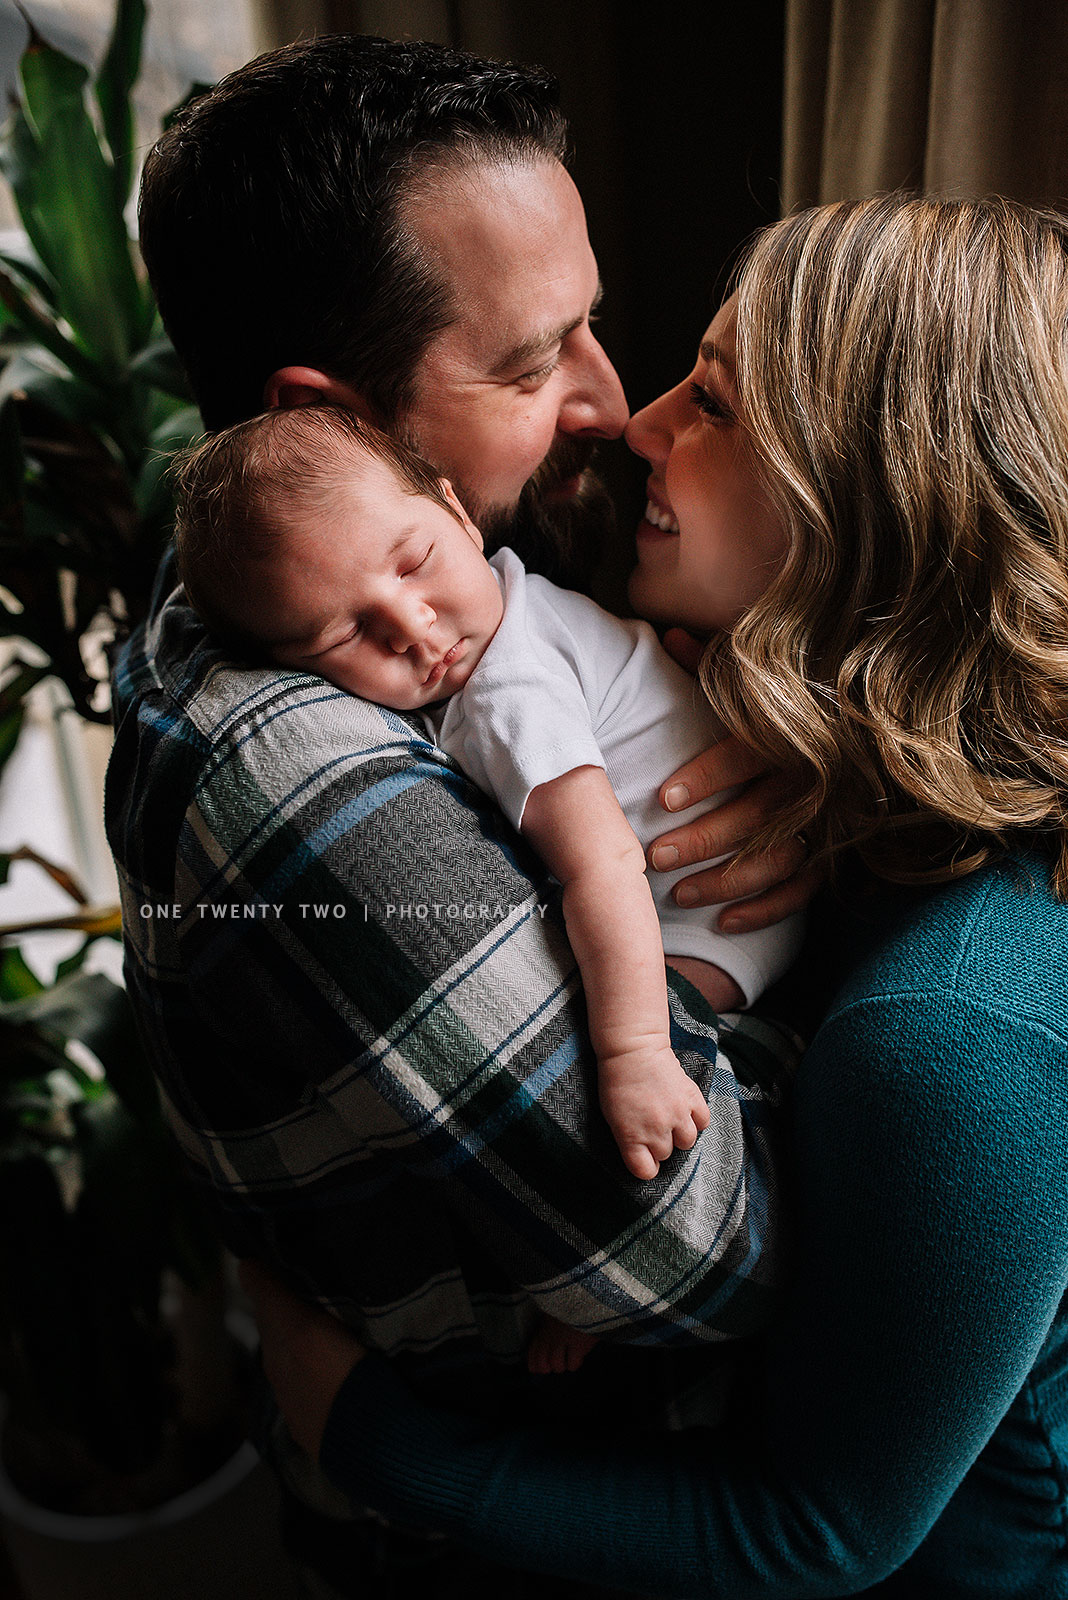 top-st-louis-indoor-newborn-portraits-family-of-three-one-twenty-two-photography.jpg